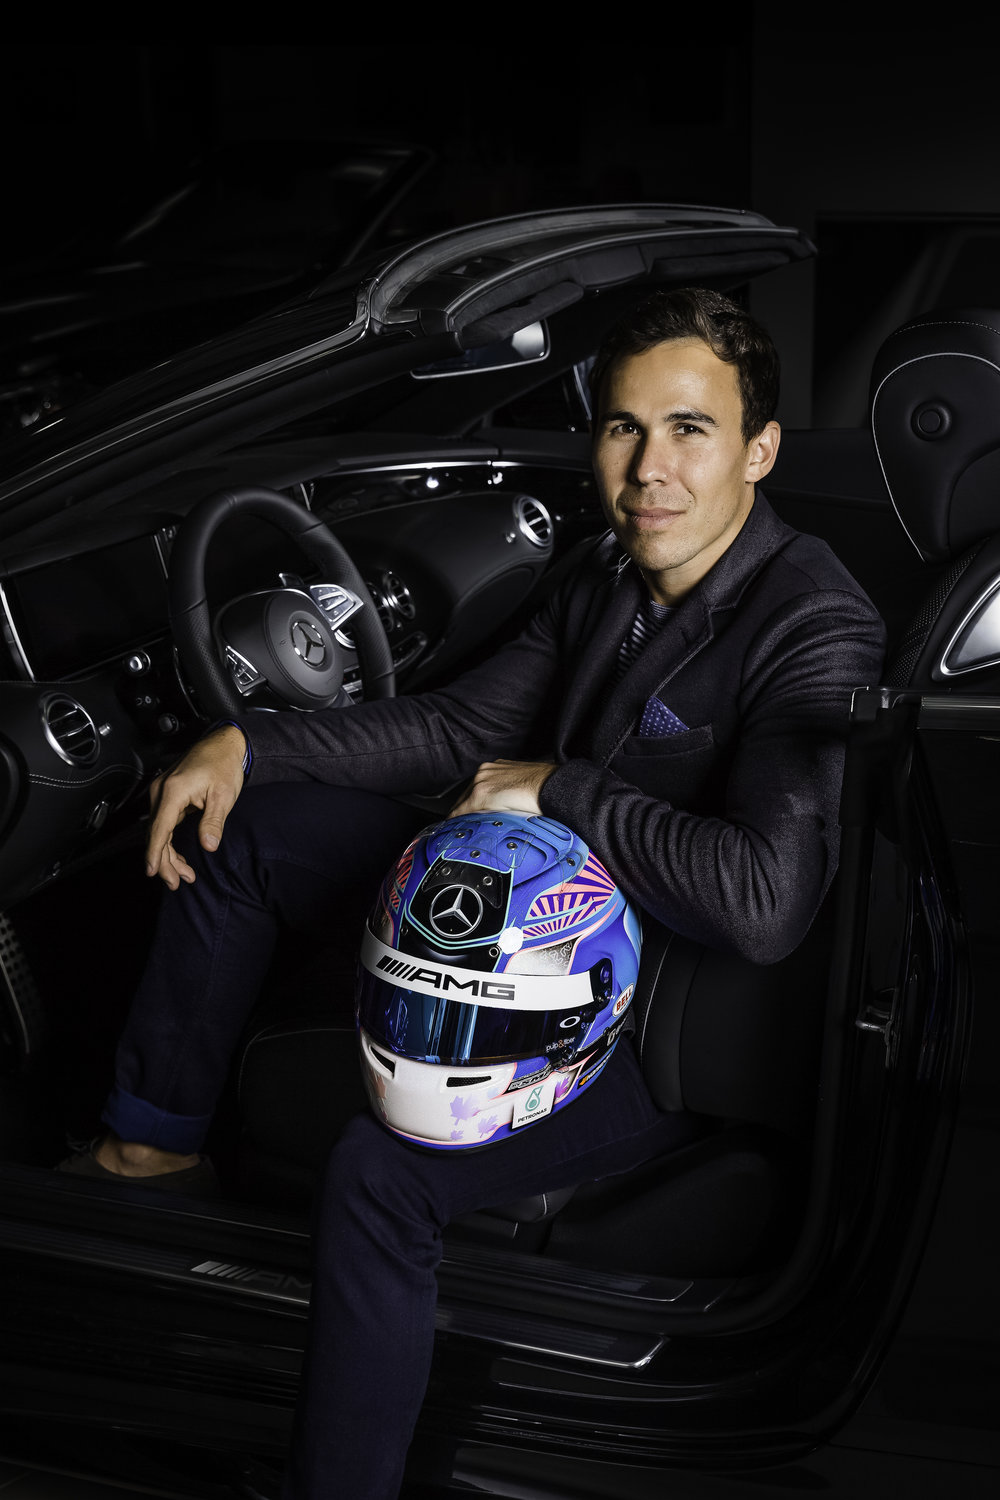 Autostrada Forum - Cover Shoot - Robert Wickens 2017 -2-2ProPhotoRGB.jpg